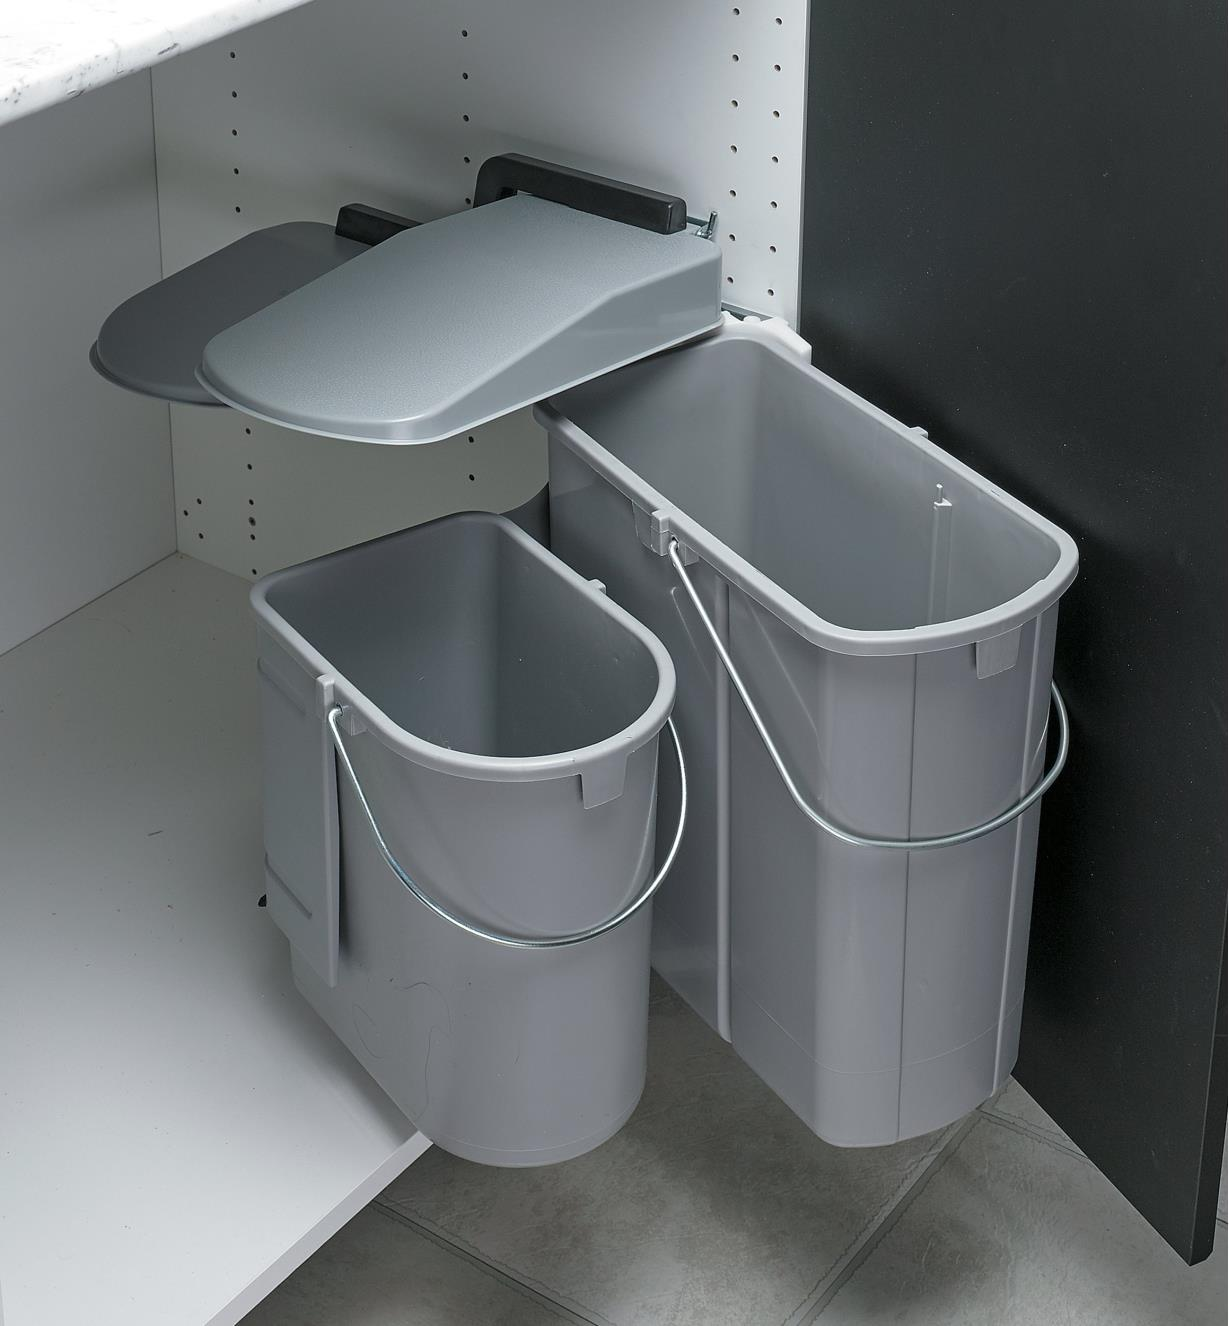 Dual Waste Bin swinging out of the cabinet as the door is opened